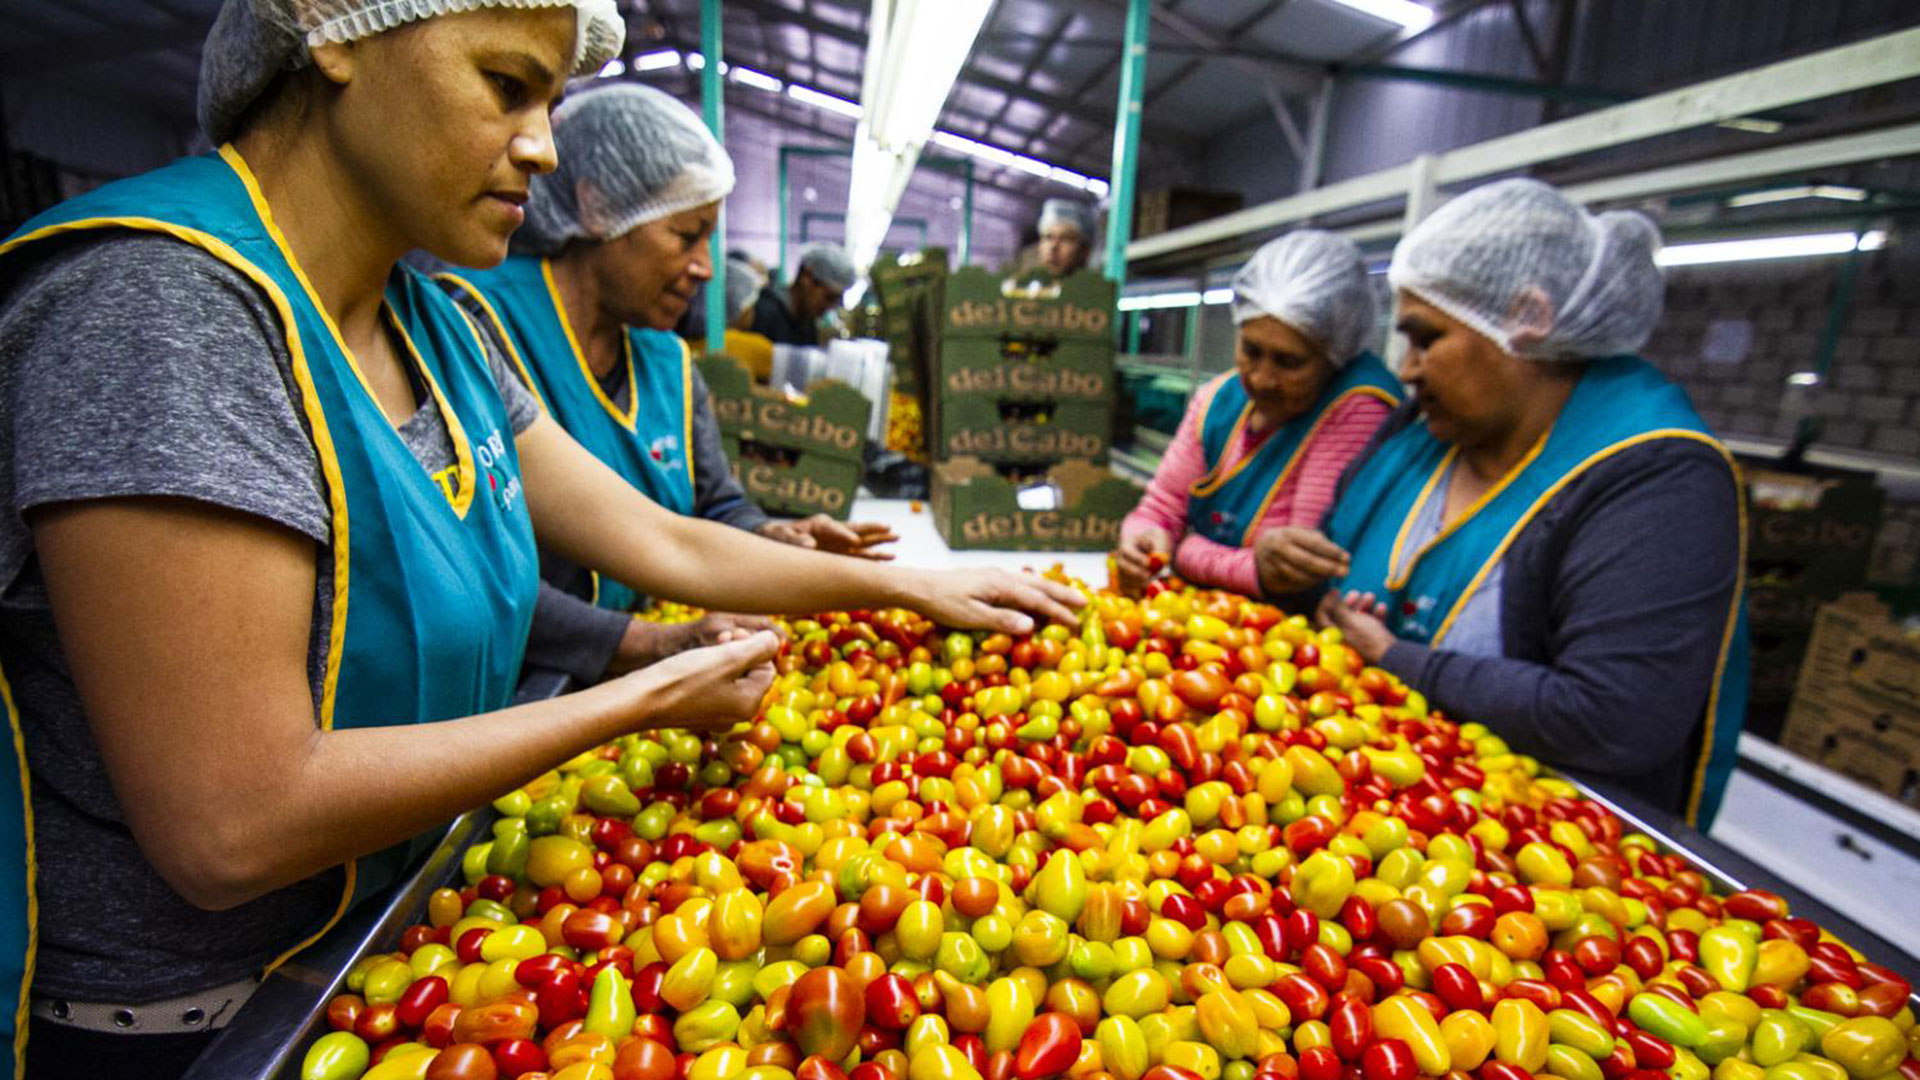 Workers sort through tomatoes at a packing plant in southern Sonora, Mexico.